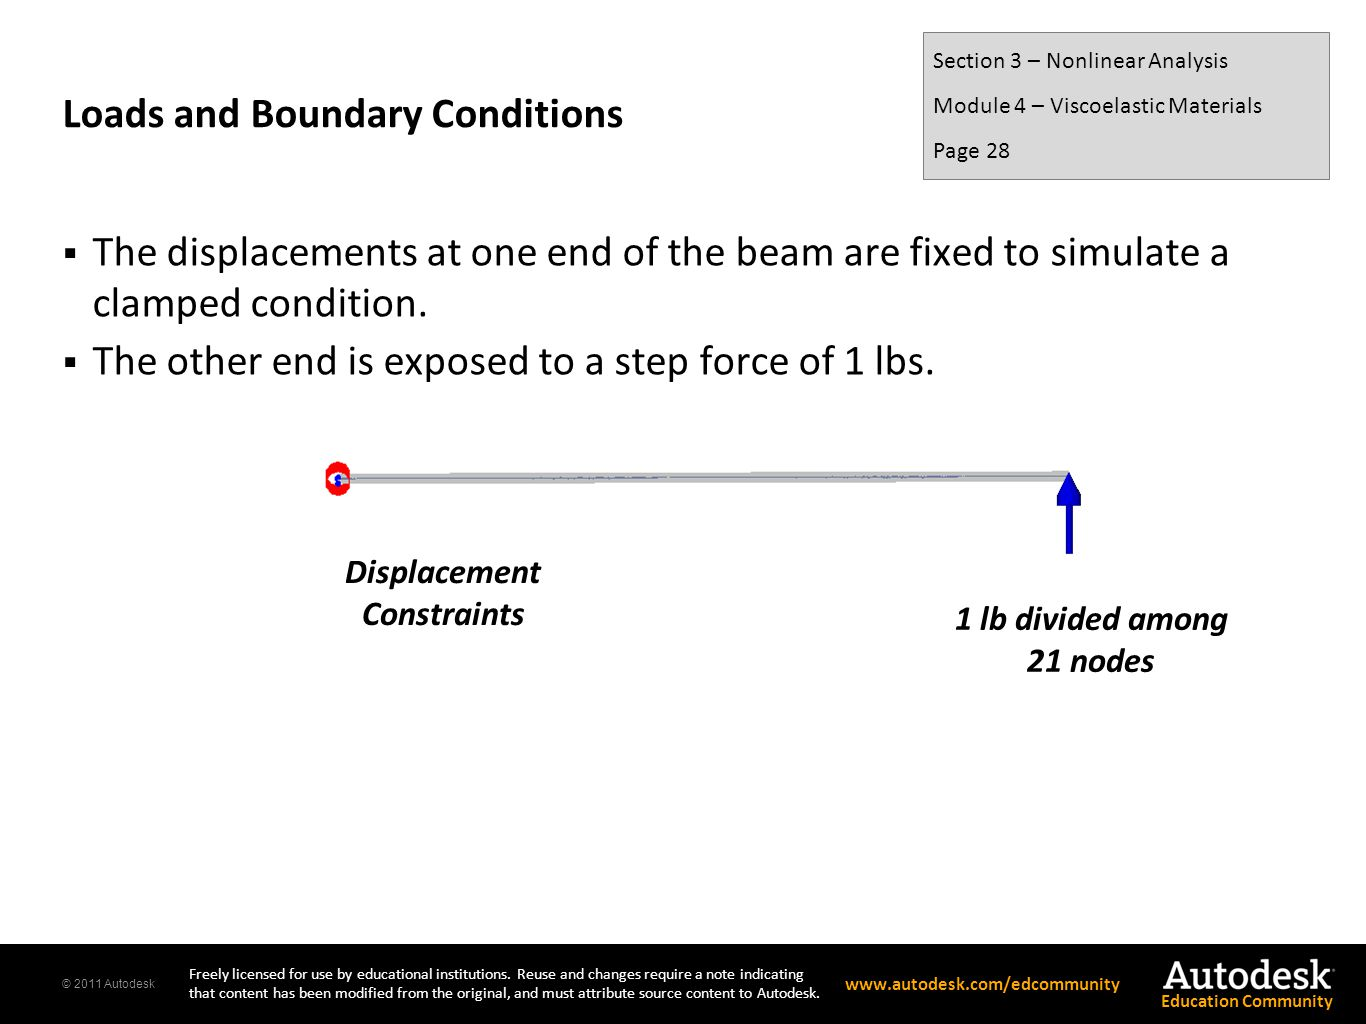 Loads and Boundary Conditions